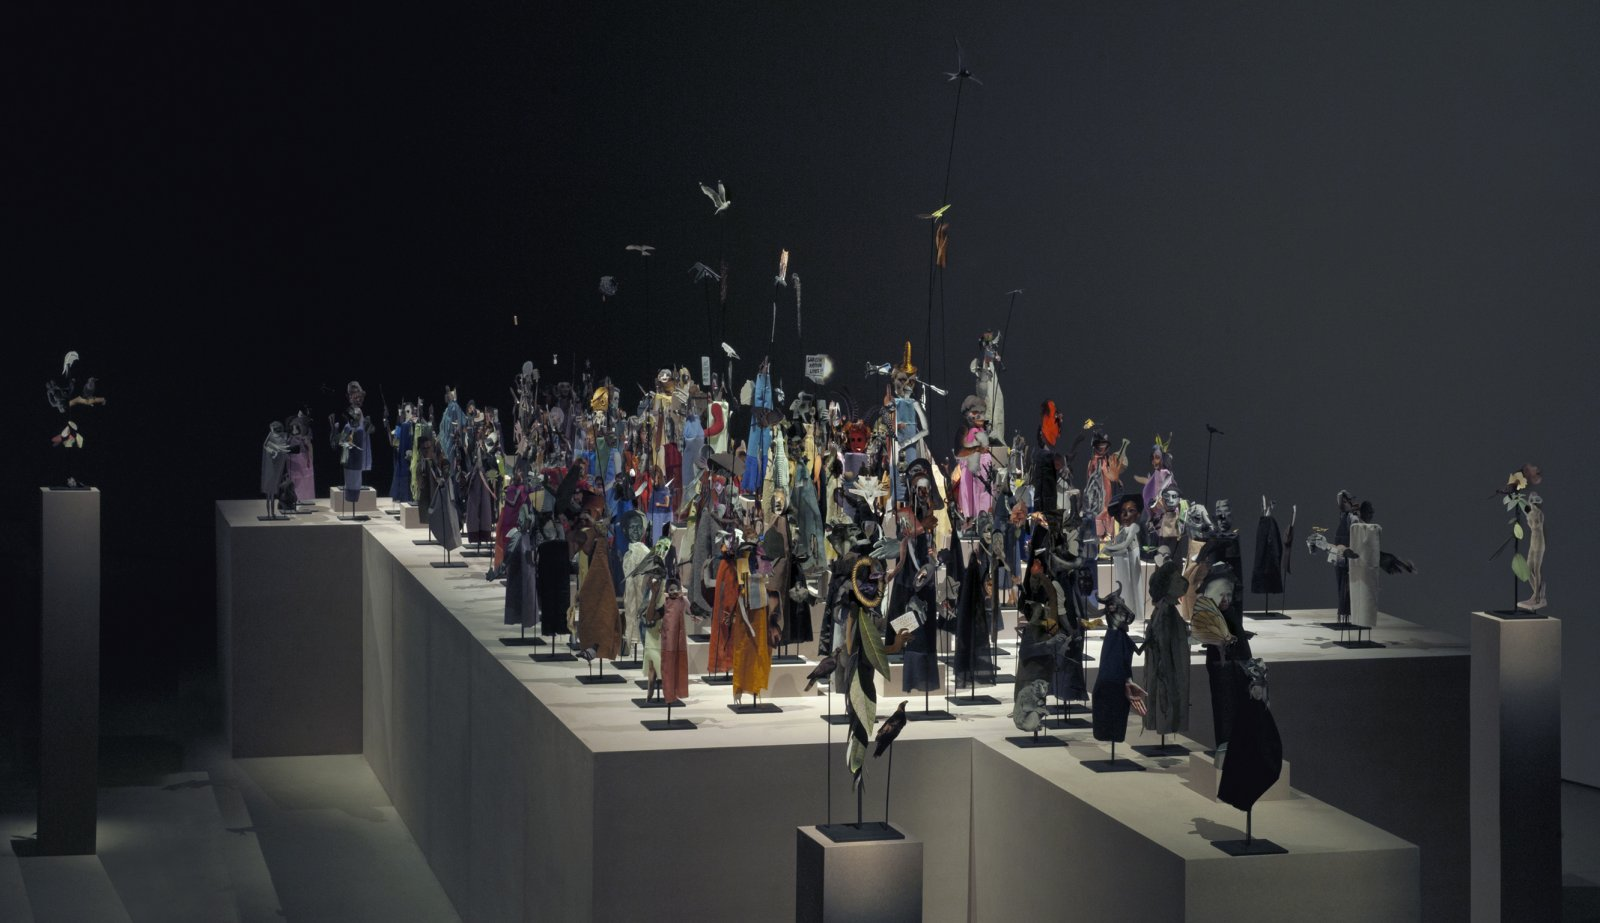 Geoffrey Farmer,The Surgeon and the Photographer, 2009, paper, textile, wood, and metal, 365 figures, dimensions variable. Installation view,Barbican Centre, London, 2013